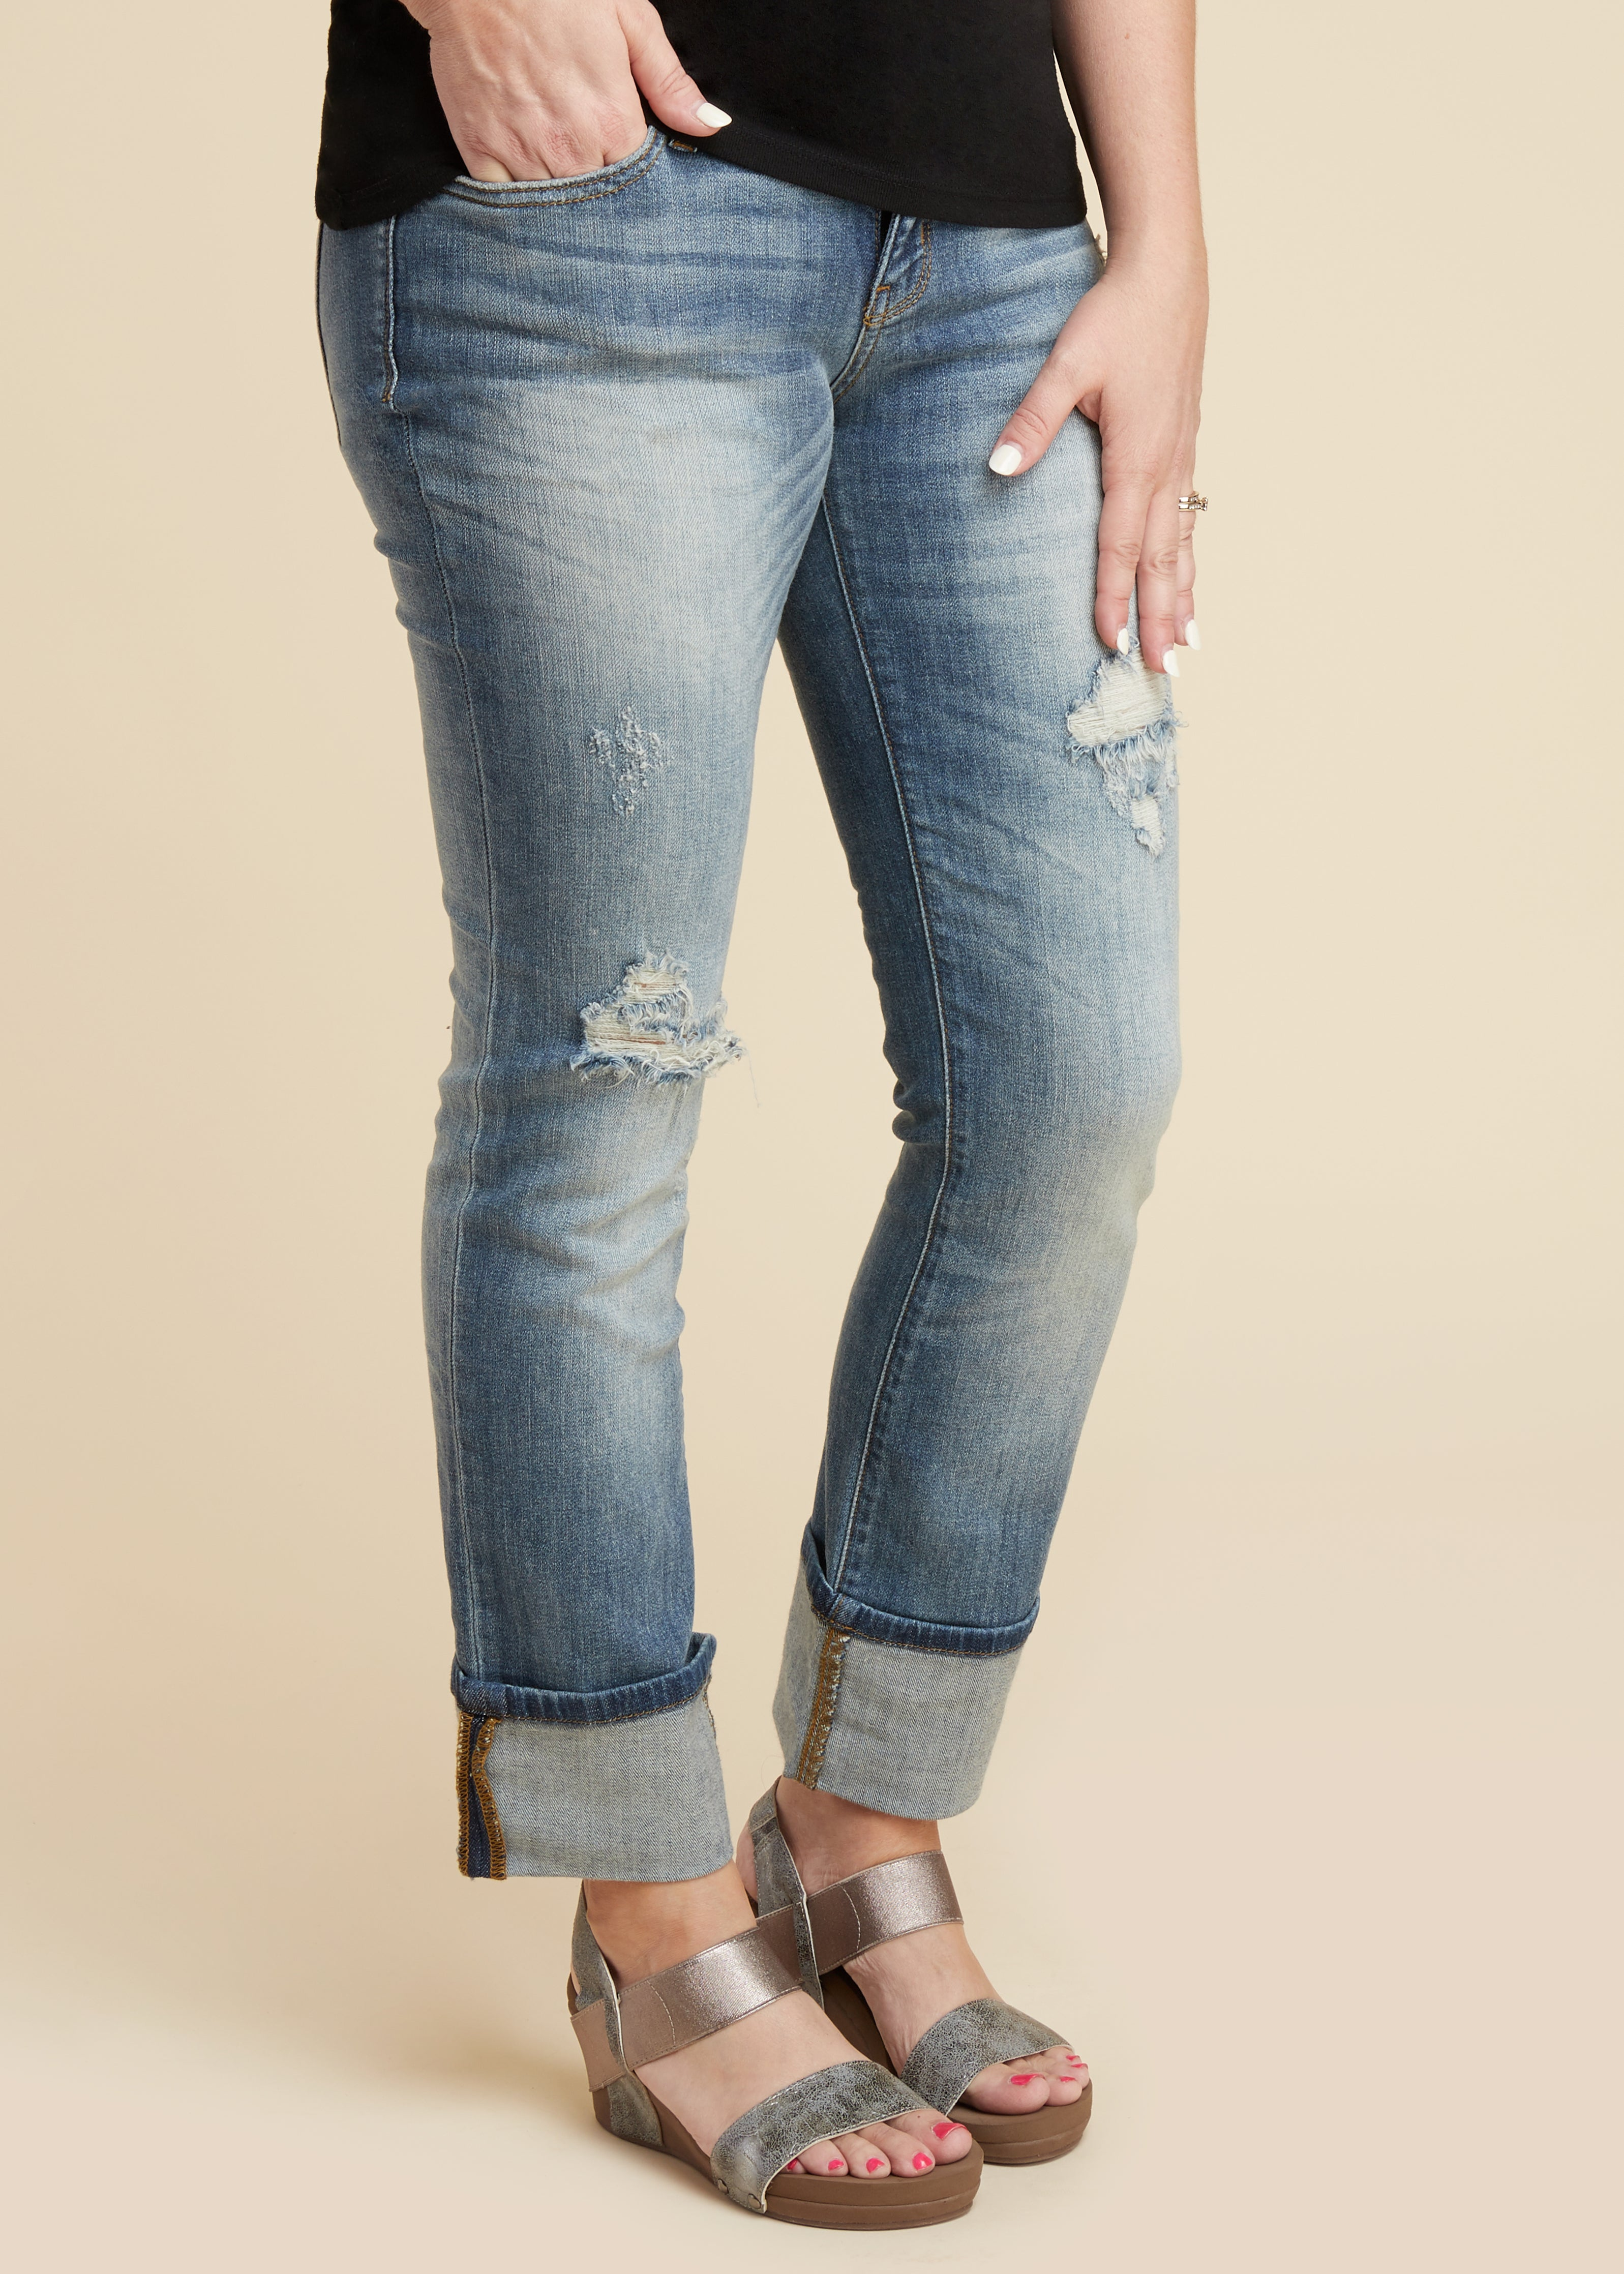 Libbie Distressed Jean-RESTOCK